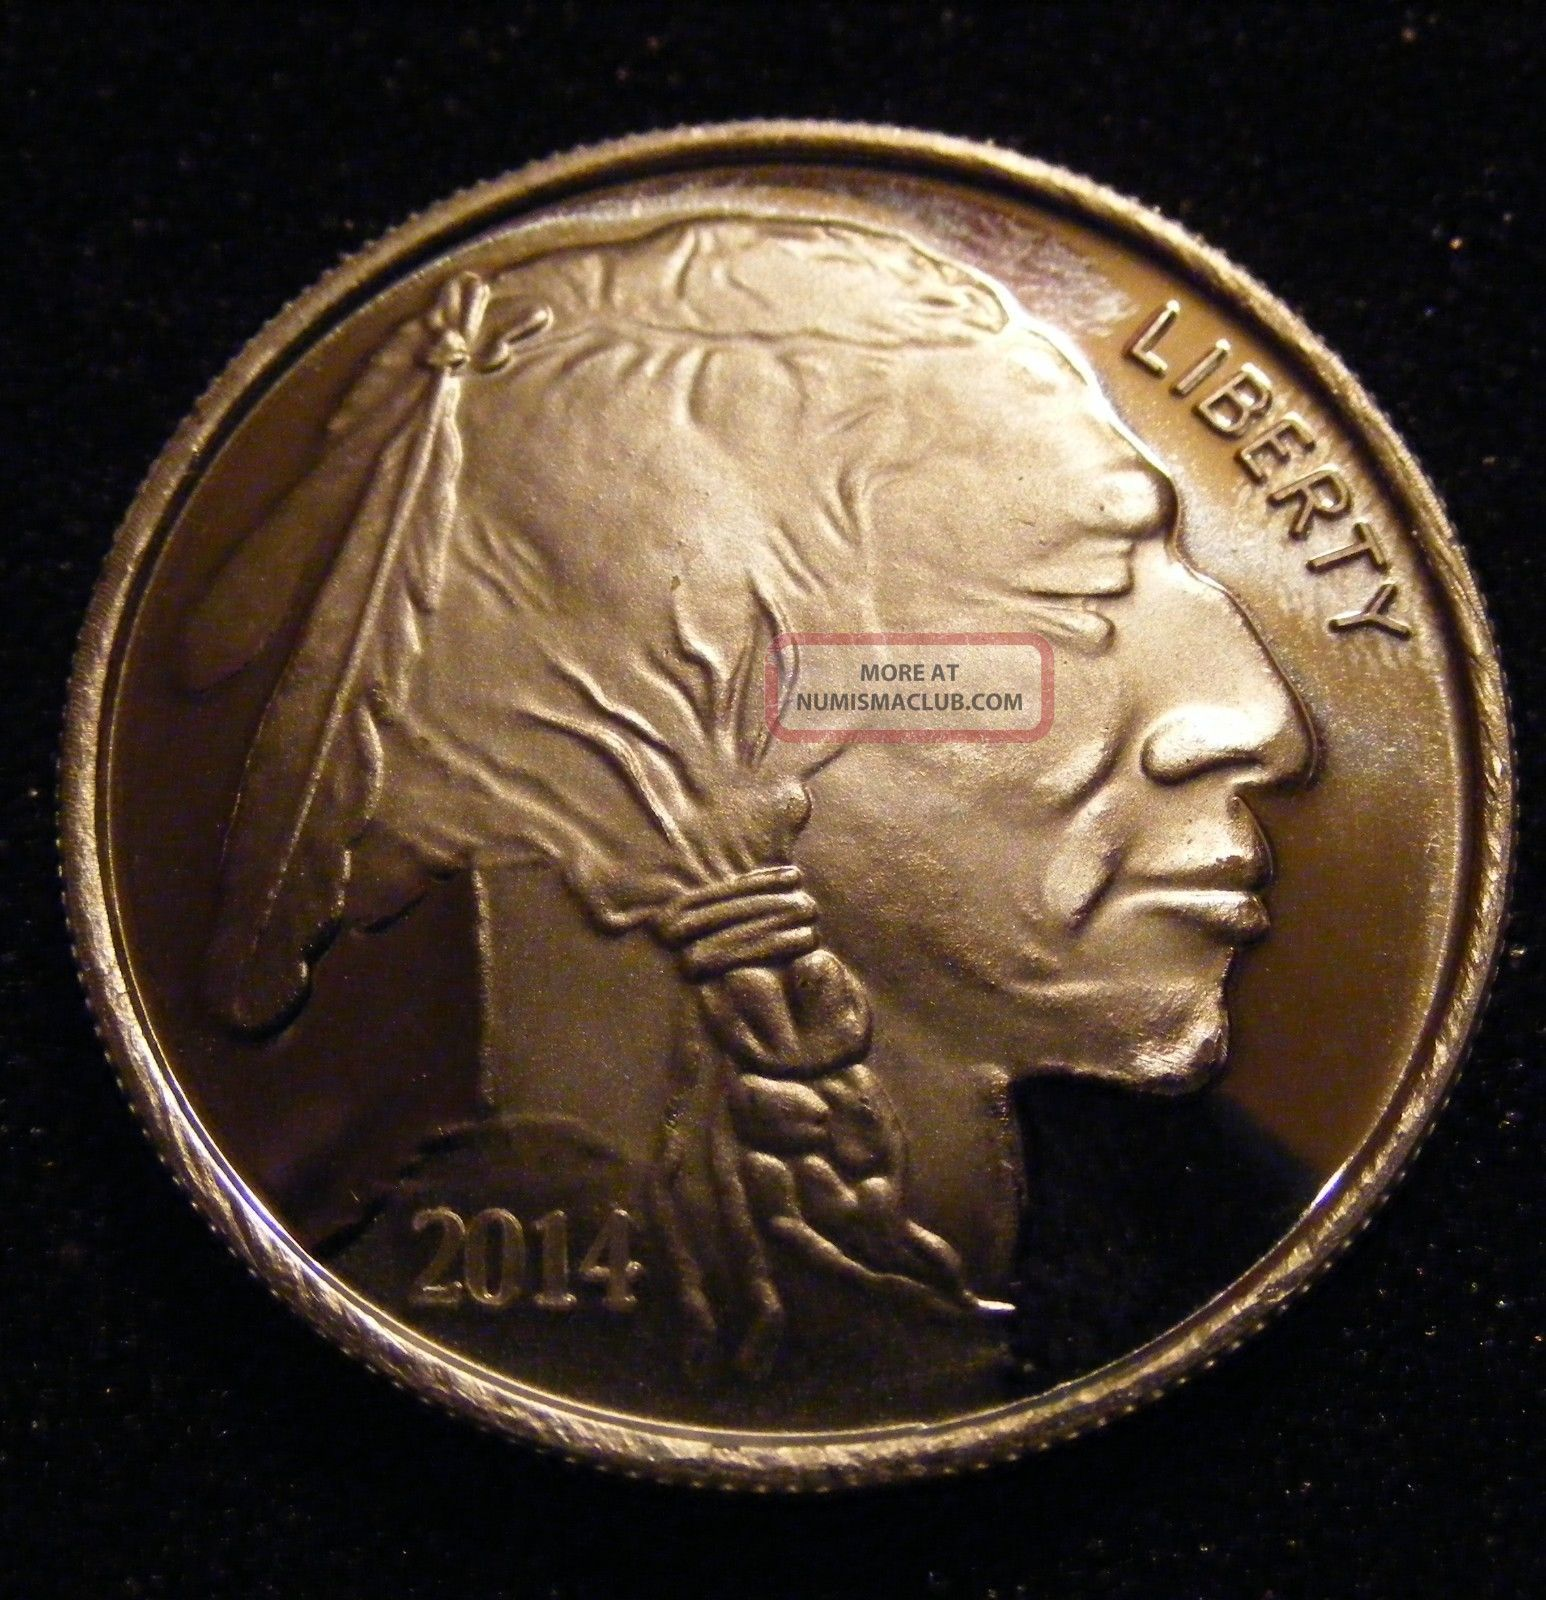 2014 American Indian Proof - Buffalo 1 Troy Oz.  999 Fine Silver Round Silver photo